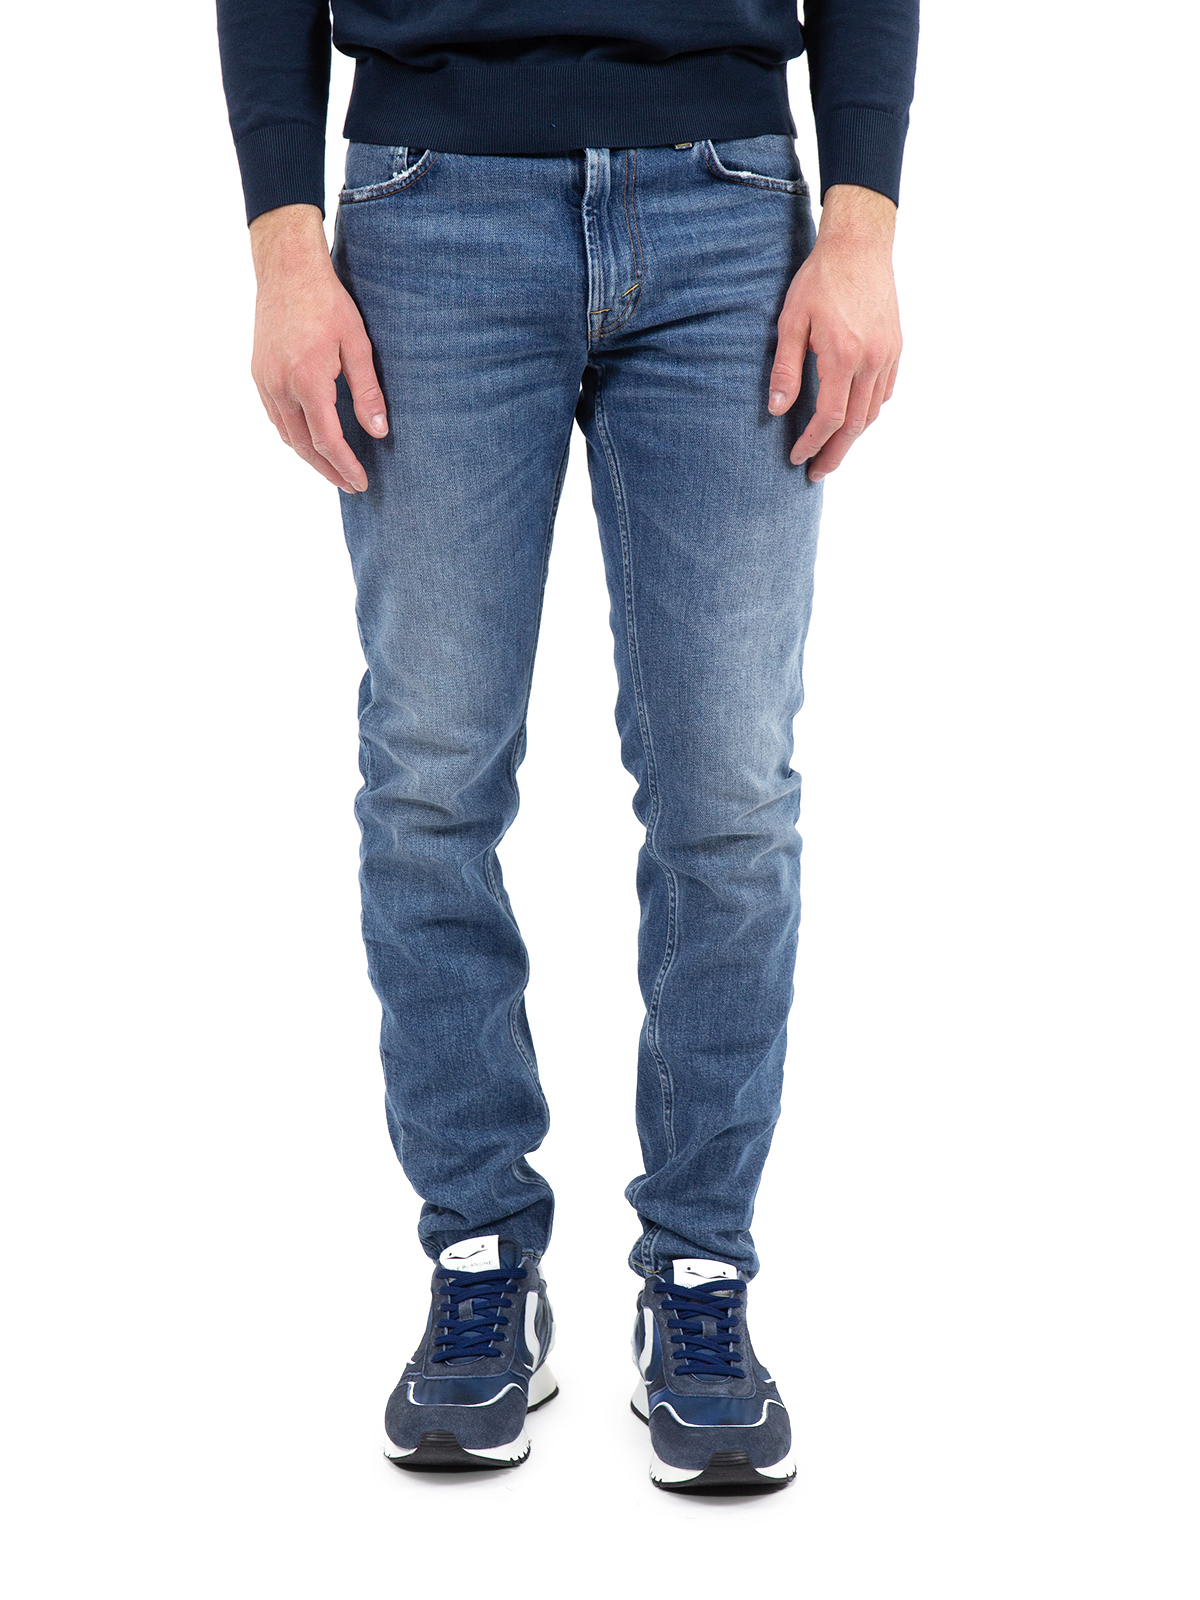 Department Five Jeans  U18D08 D1805